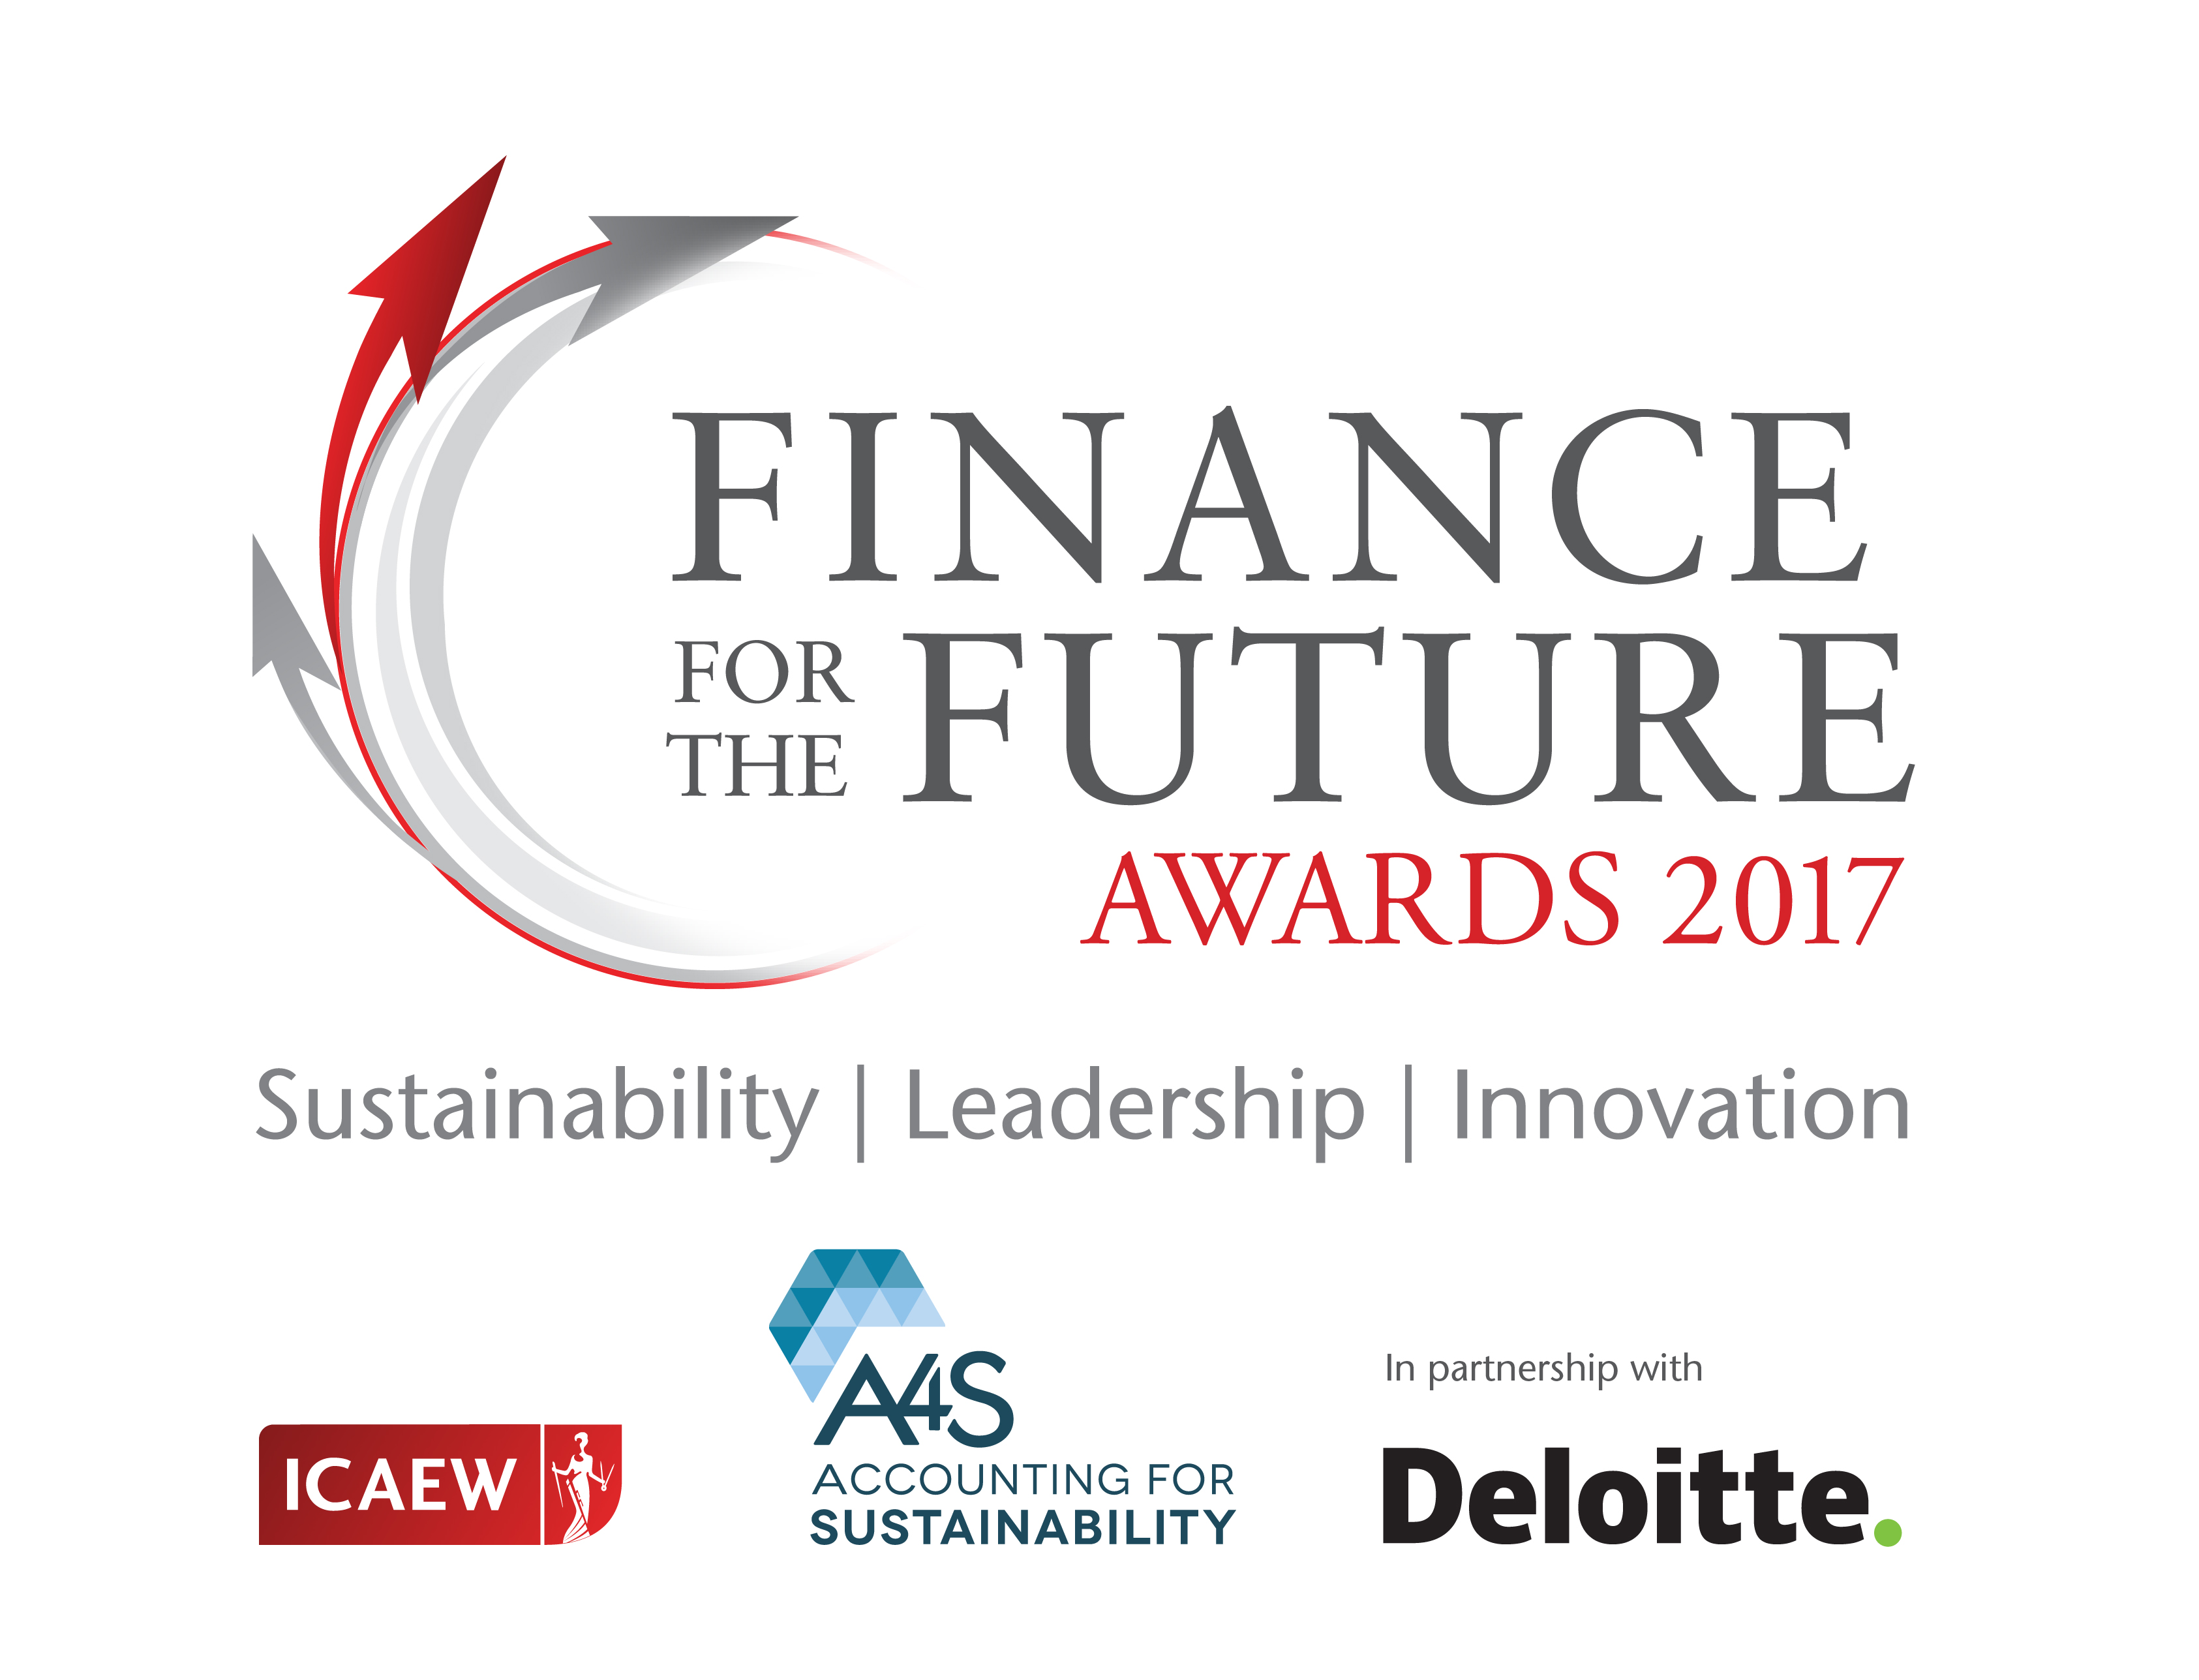 Finance for the Future awards 2016